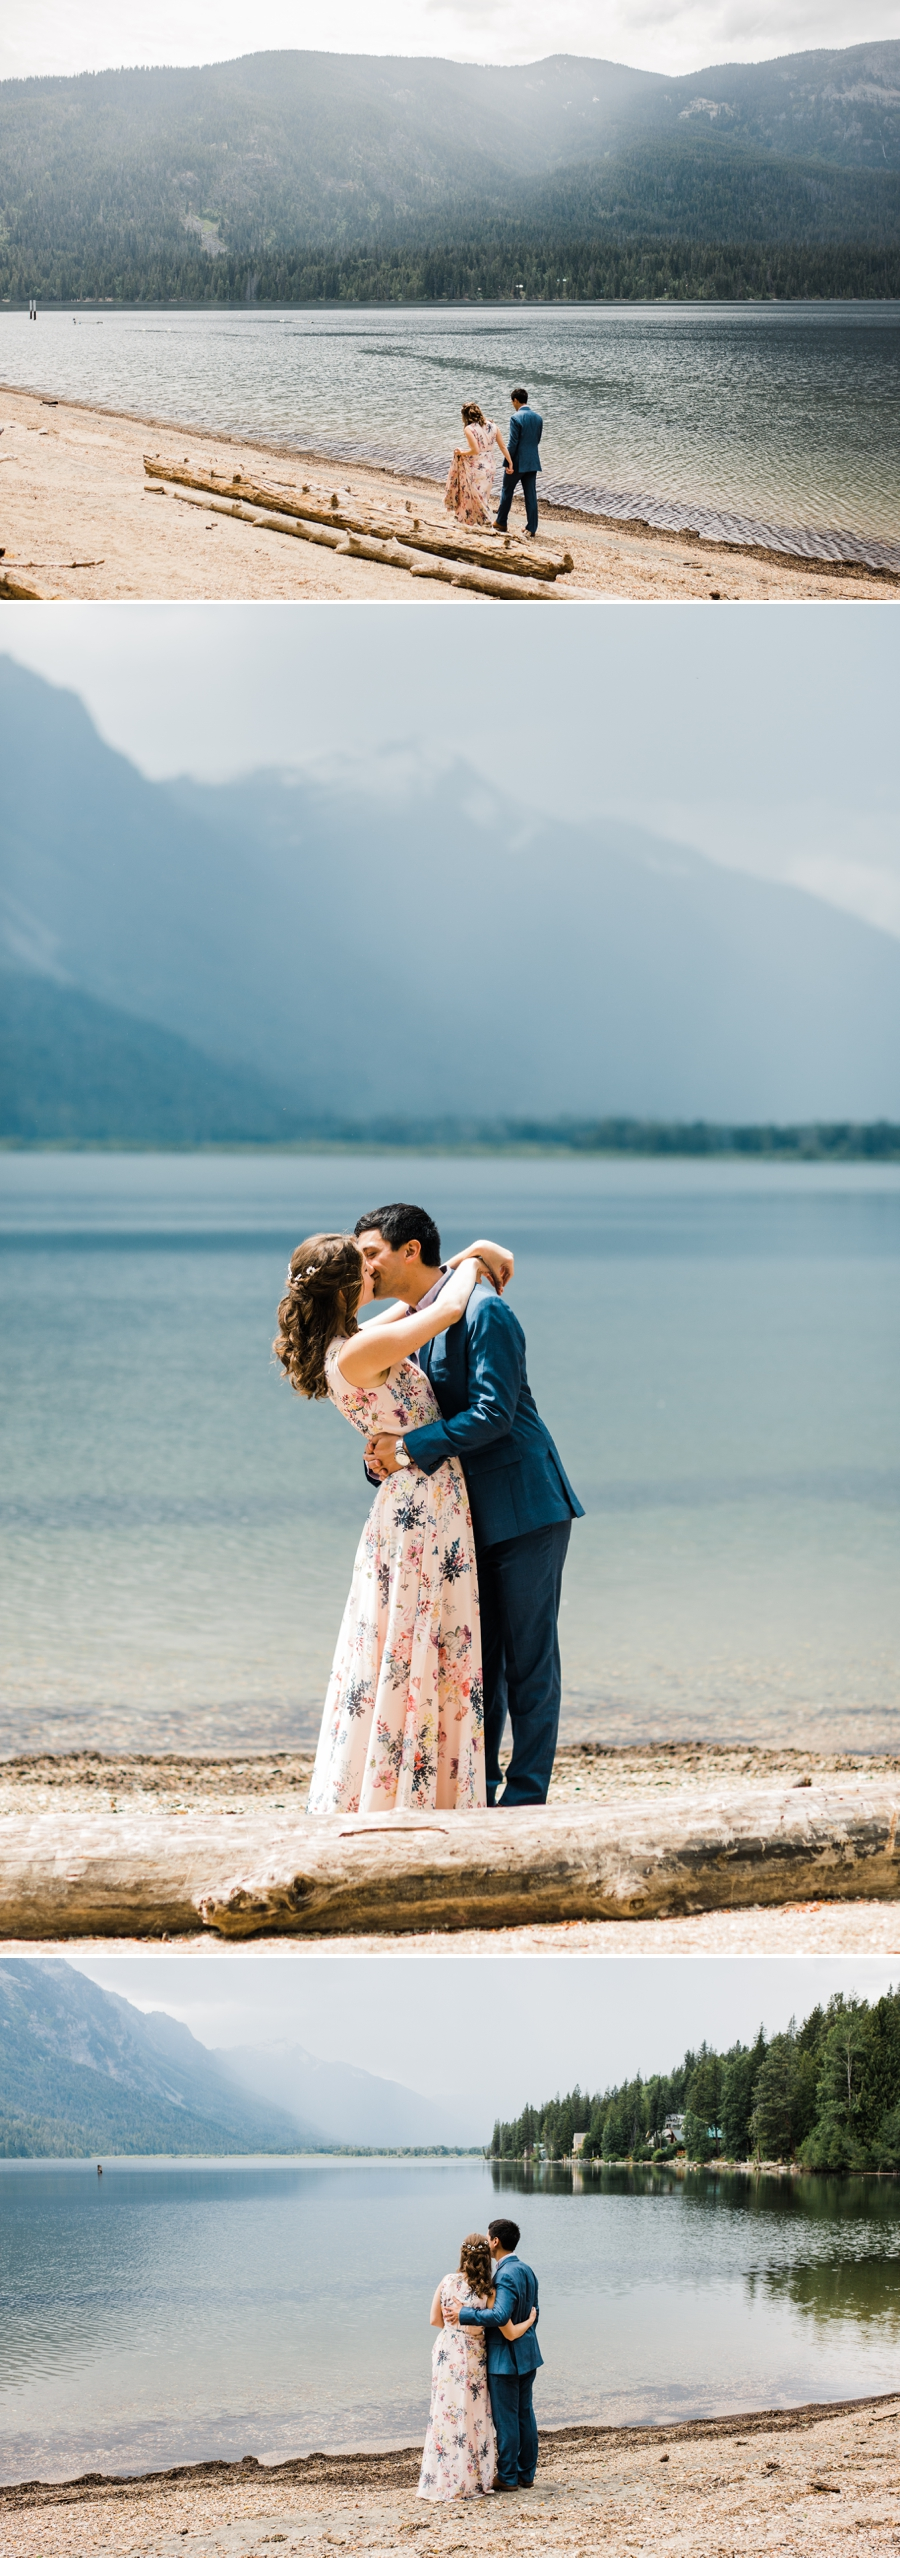 Rustic Mountain Wedding in Leavenworth at Brown Family Homestead photographed by Seattle Wedding Photographer Amy Galbraith